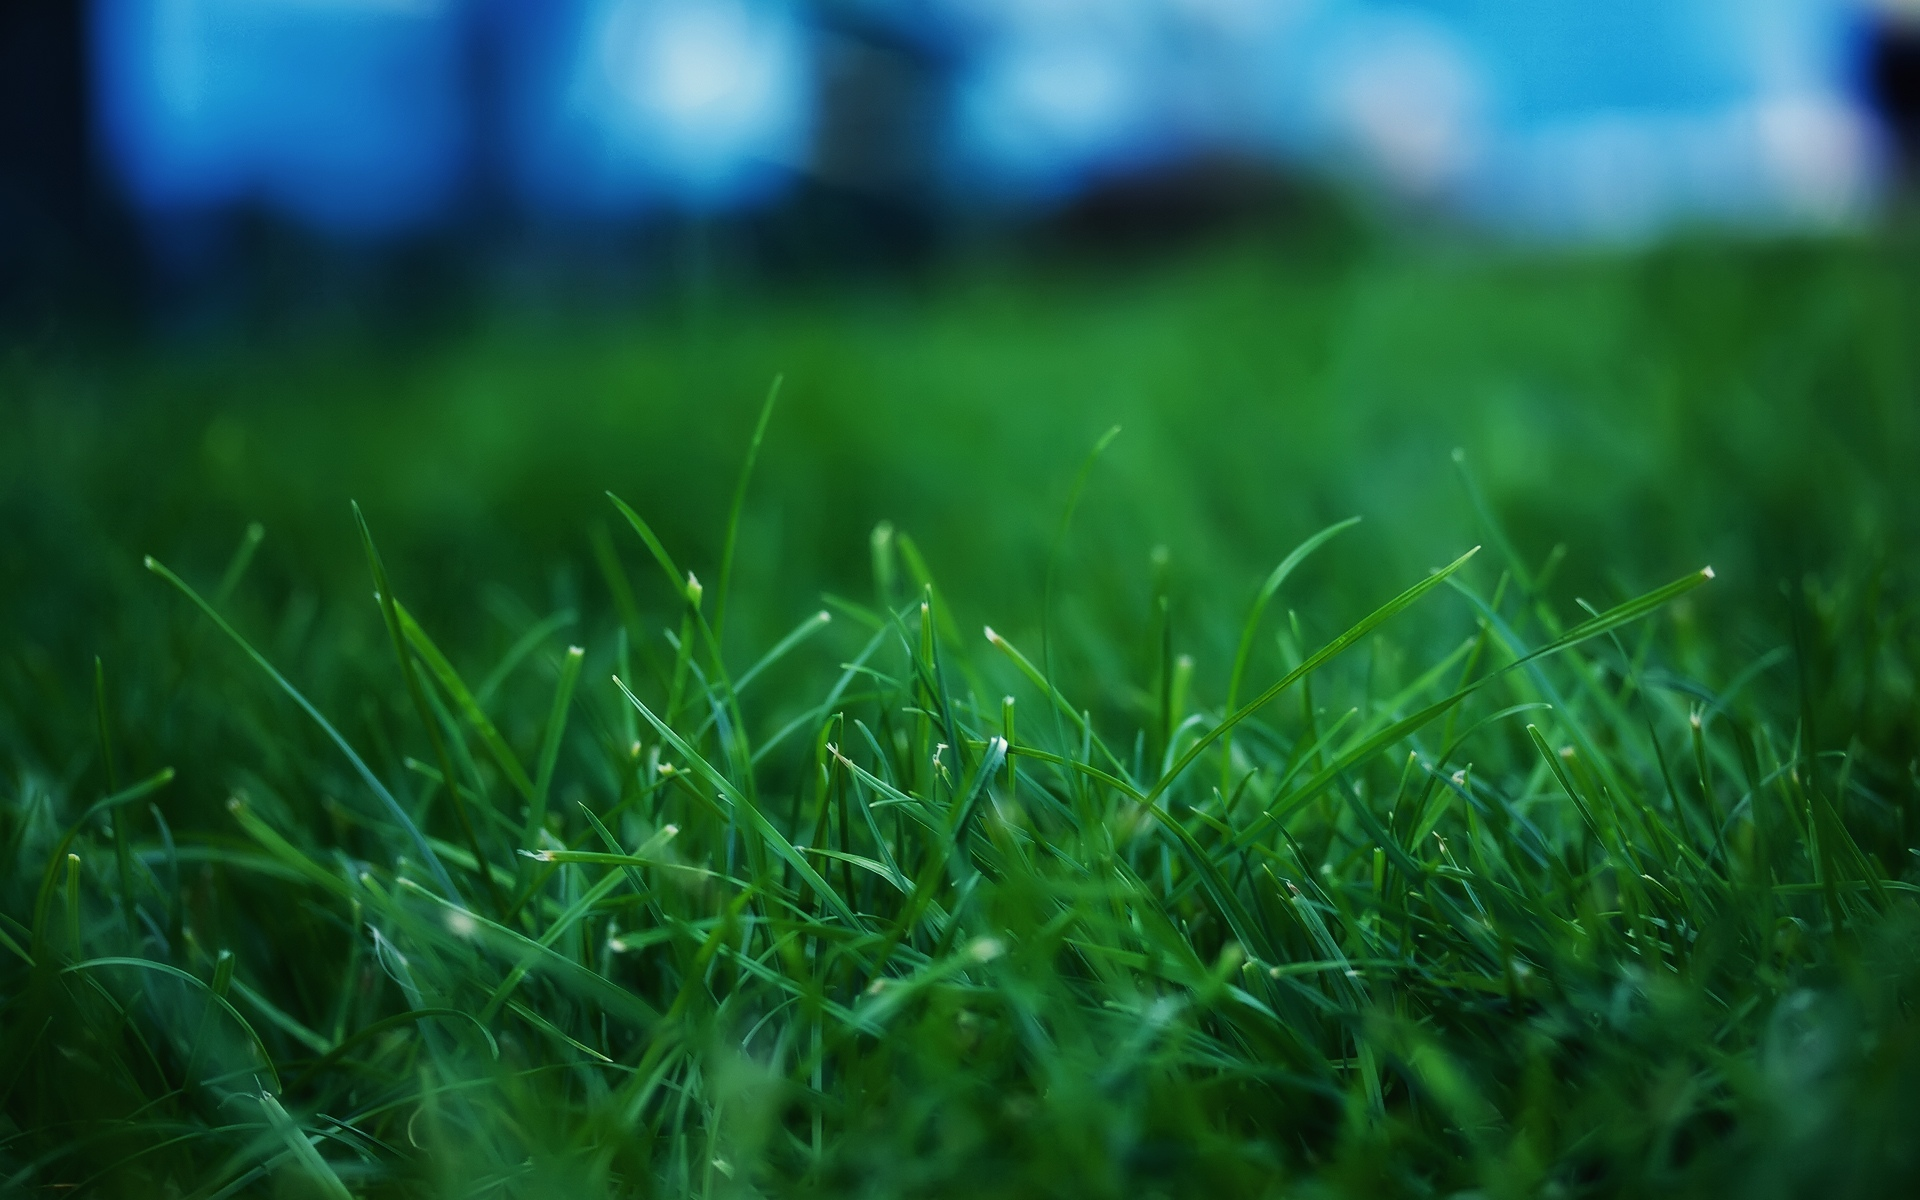 grass wallpaper full hd